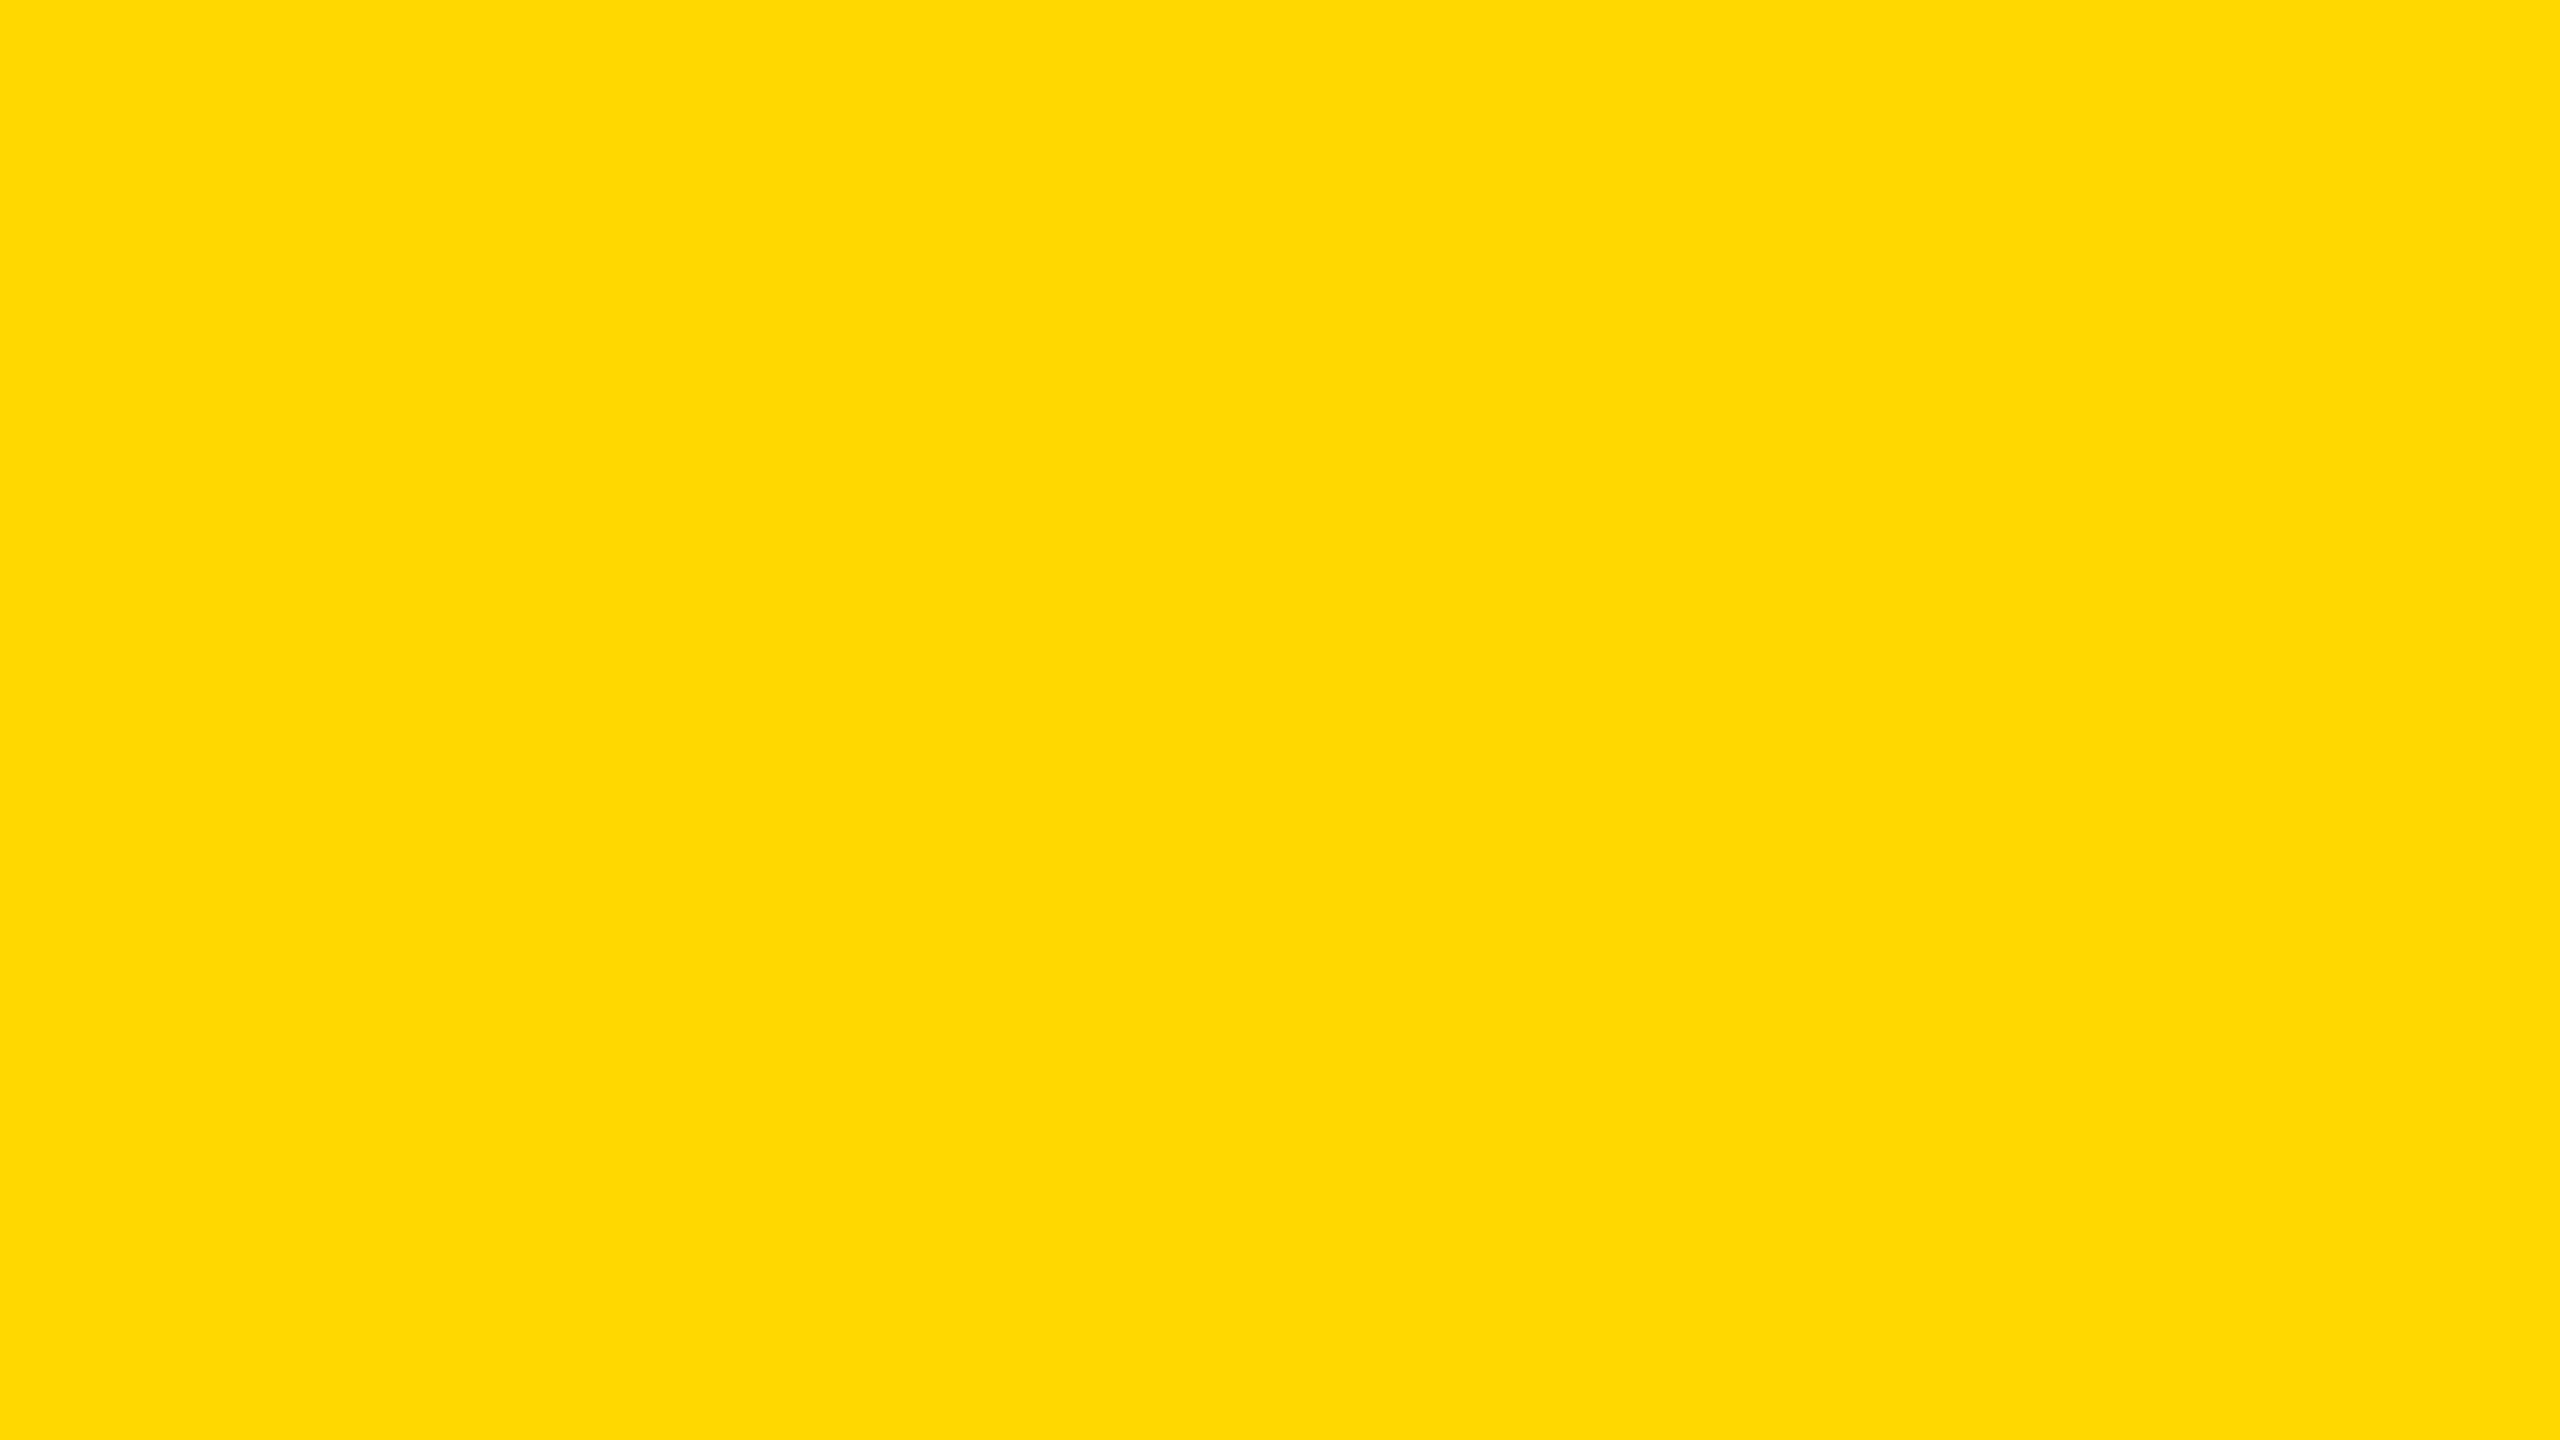 Yellow Background 43936 2560x1440 px ~ HDWallSource.com